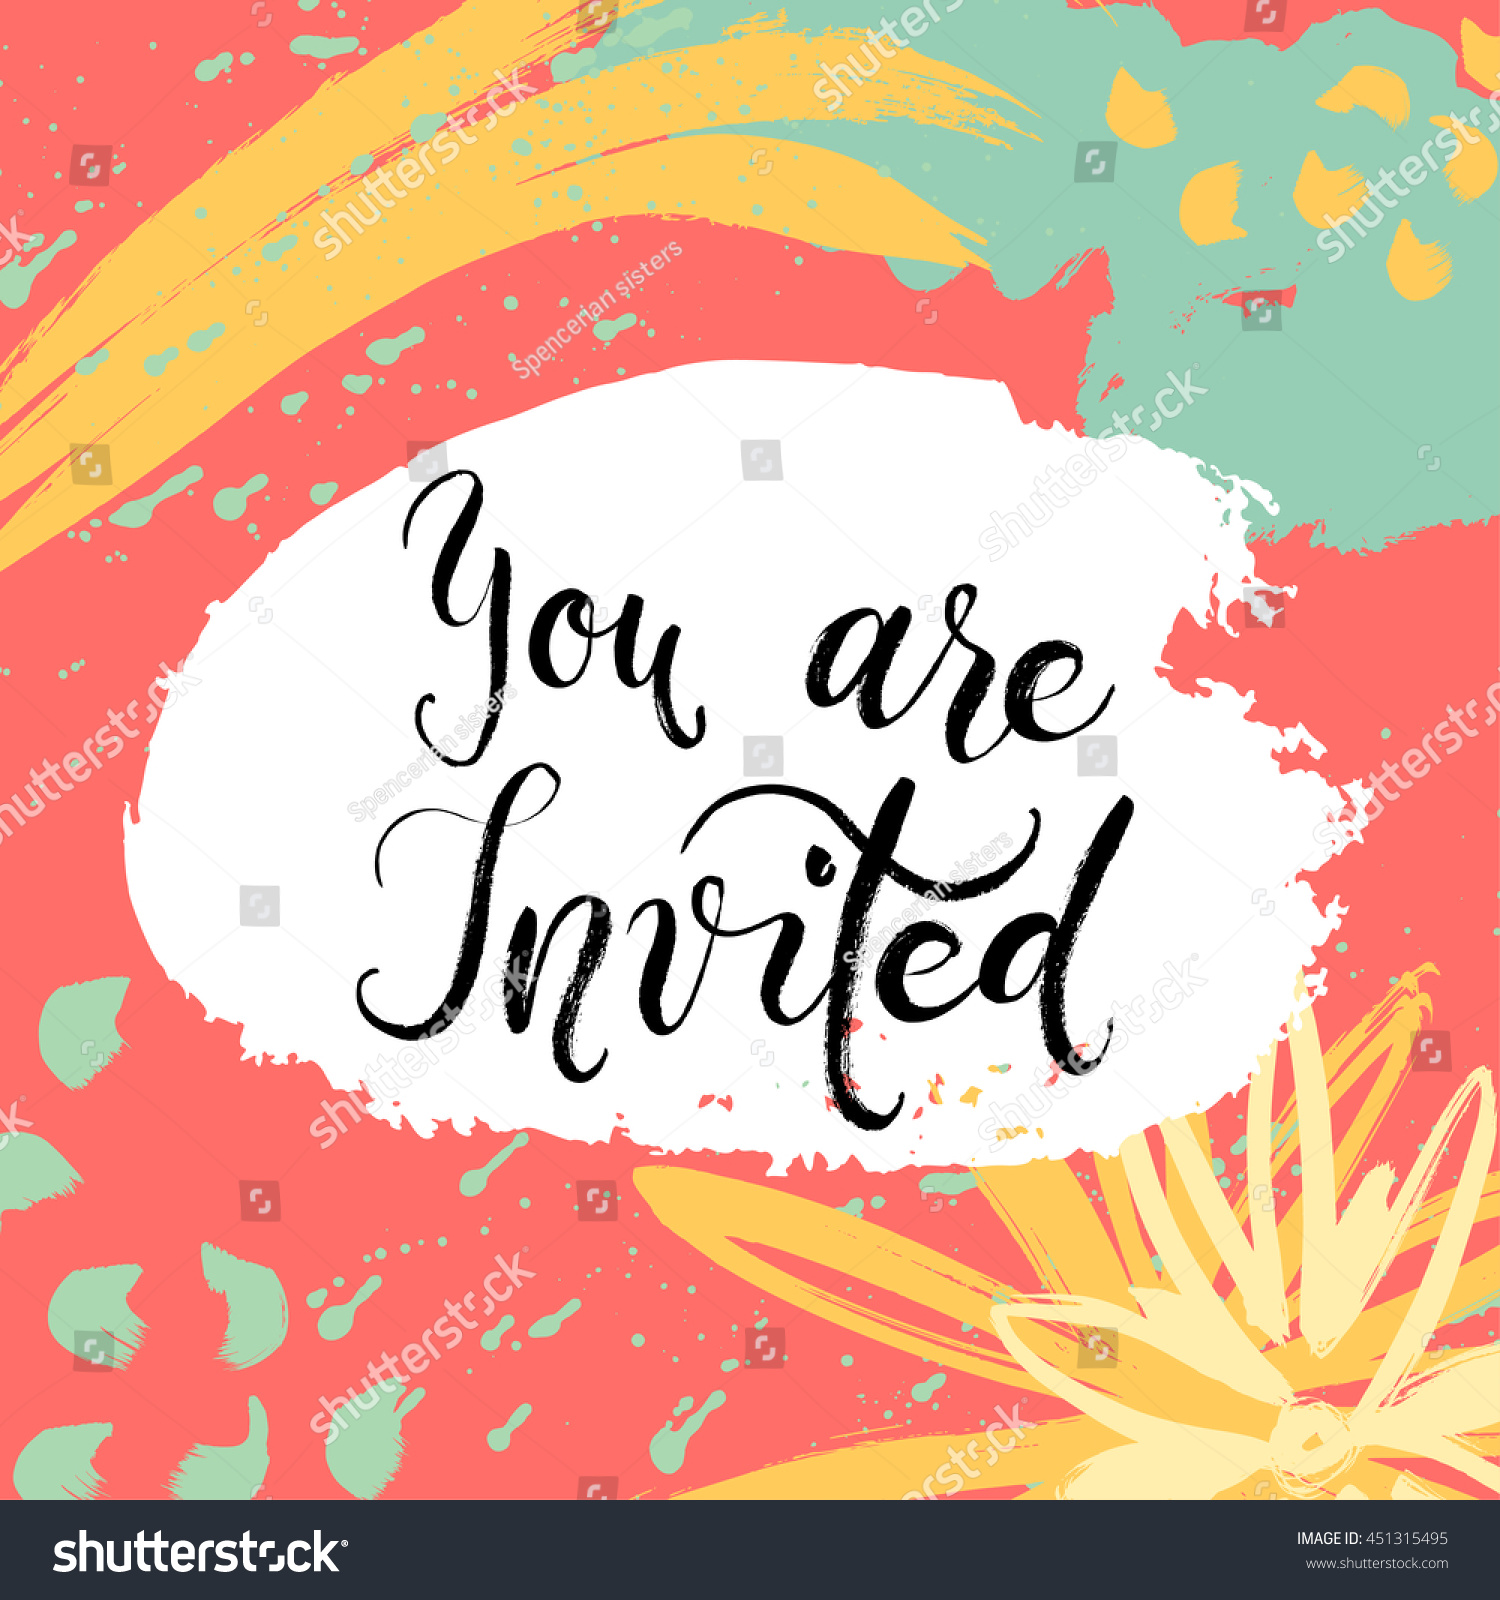 She Said Yes Invitation Card Vector Stock Vector (Royalty Free ...